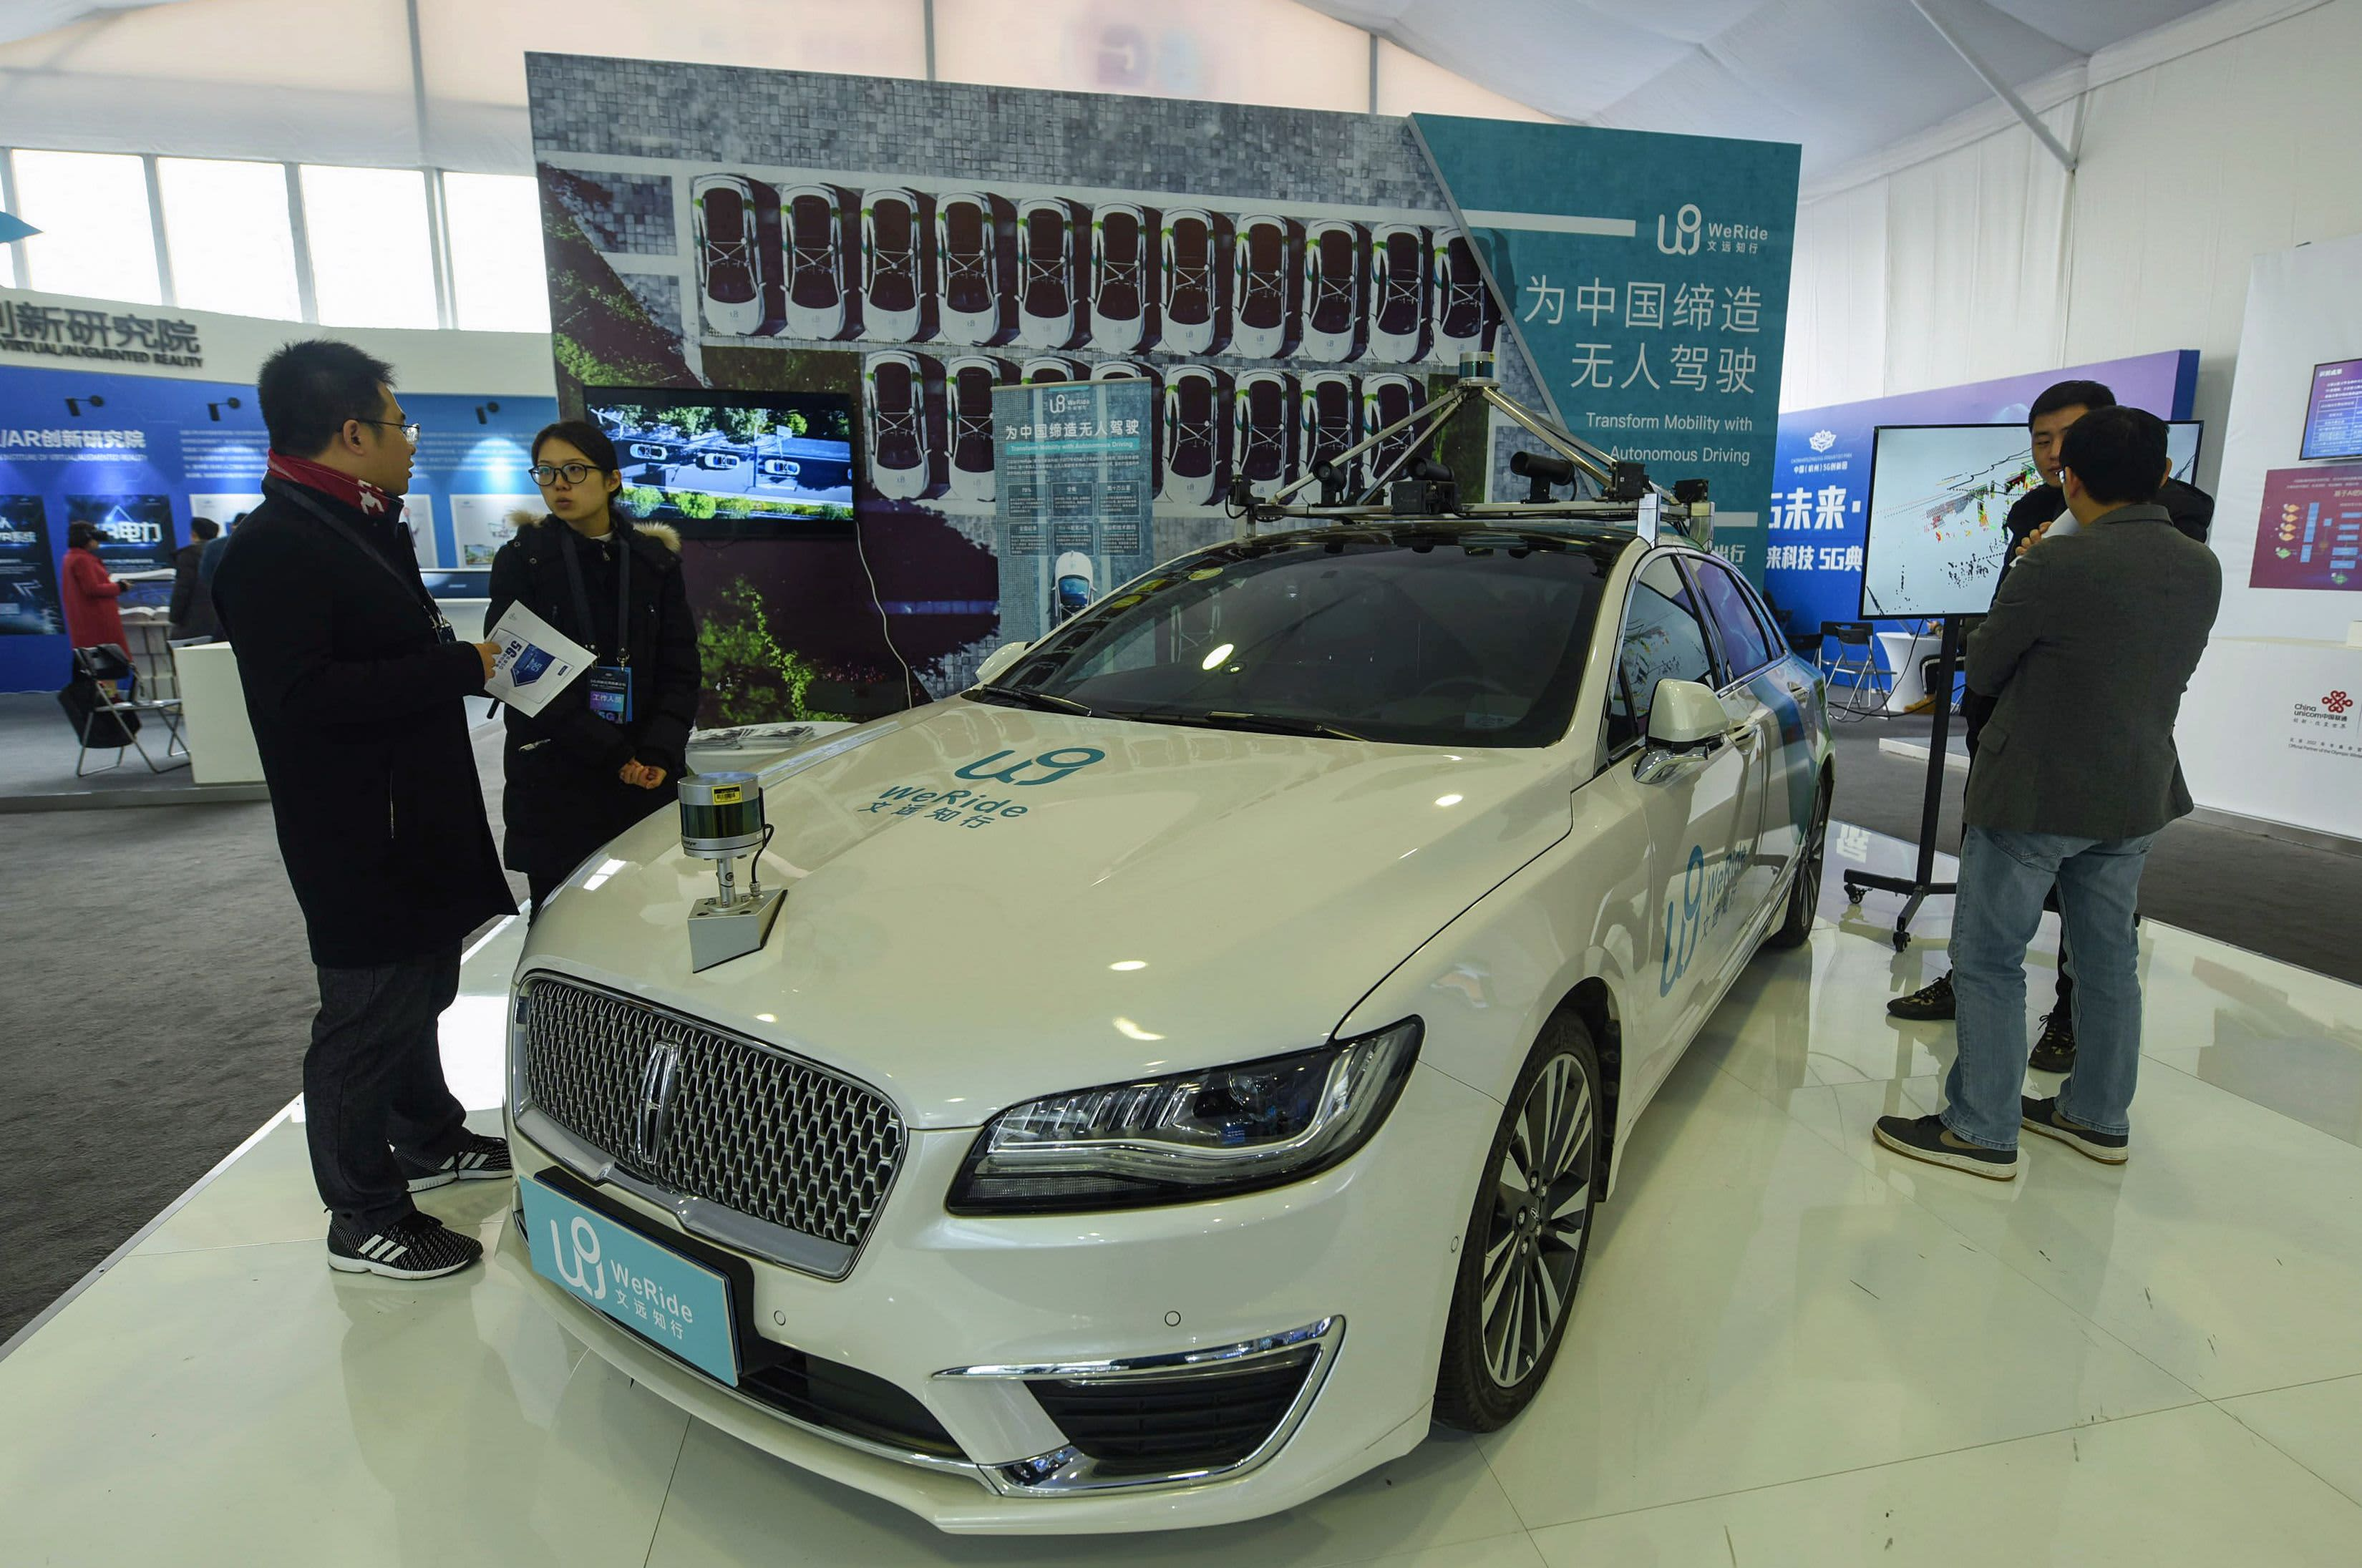 Chinese driverless car company WeRide valued at $3.3 billion after fresh funding